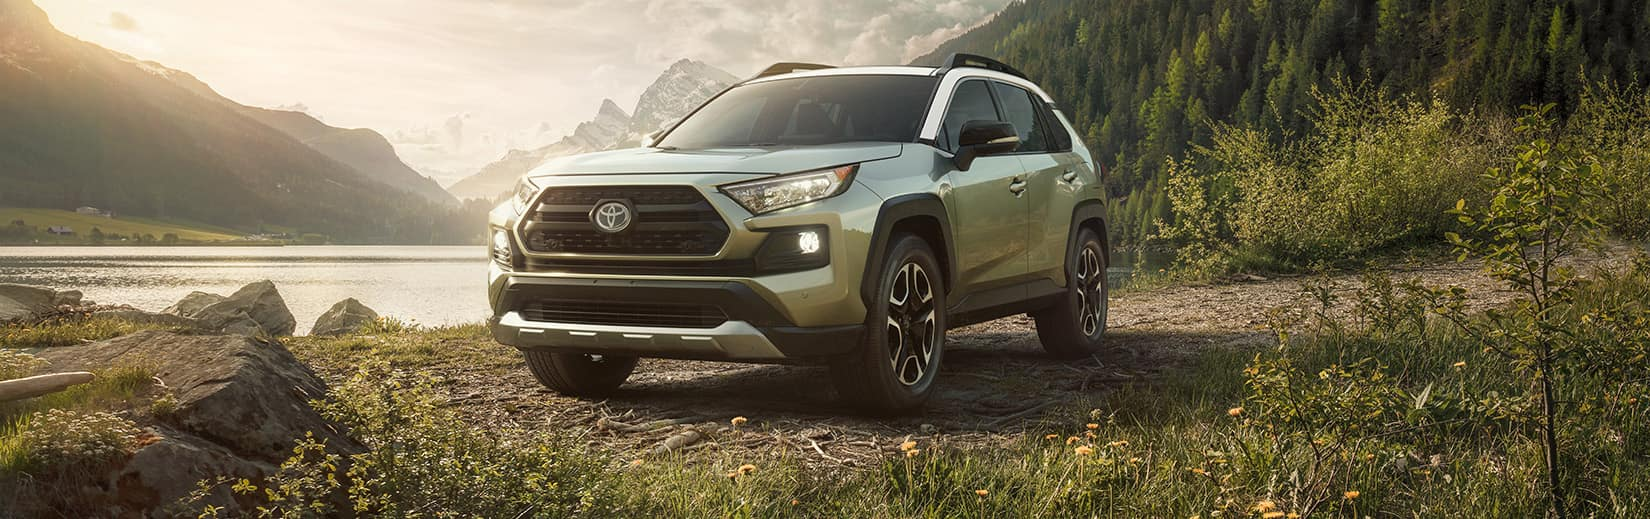 Compare the 2020 Toyota RAV4 vs. the Honda CR-V crossovers at Glen Toyota in Fair Lawn NJ